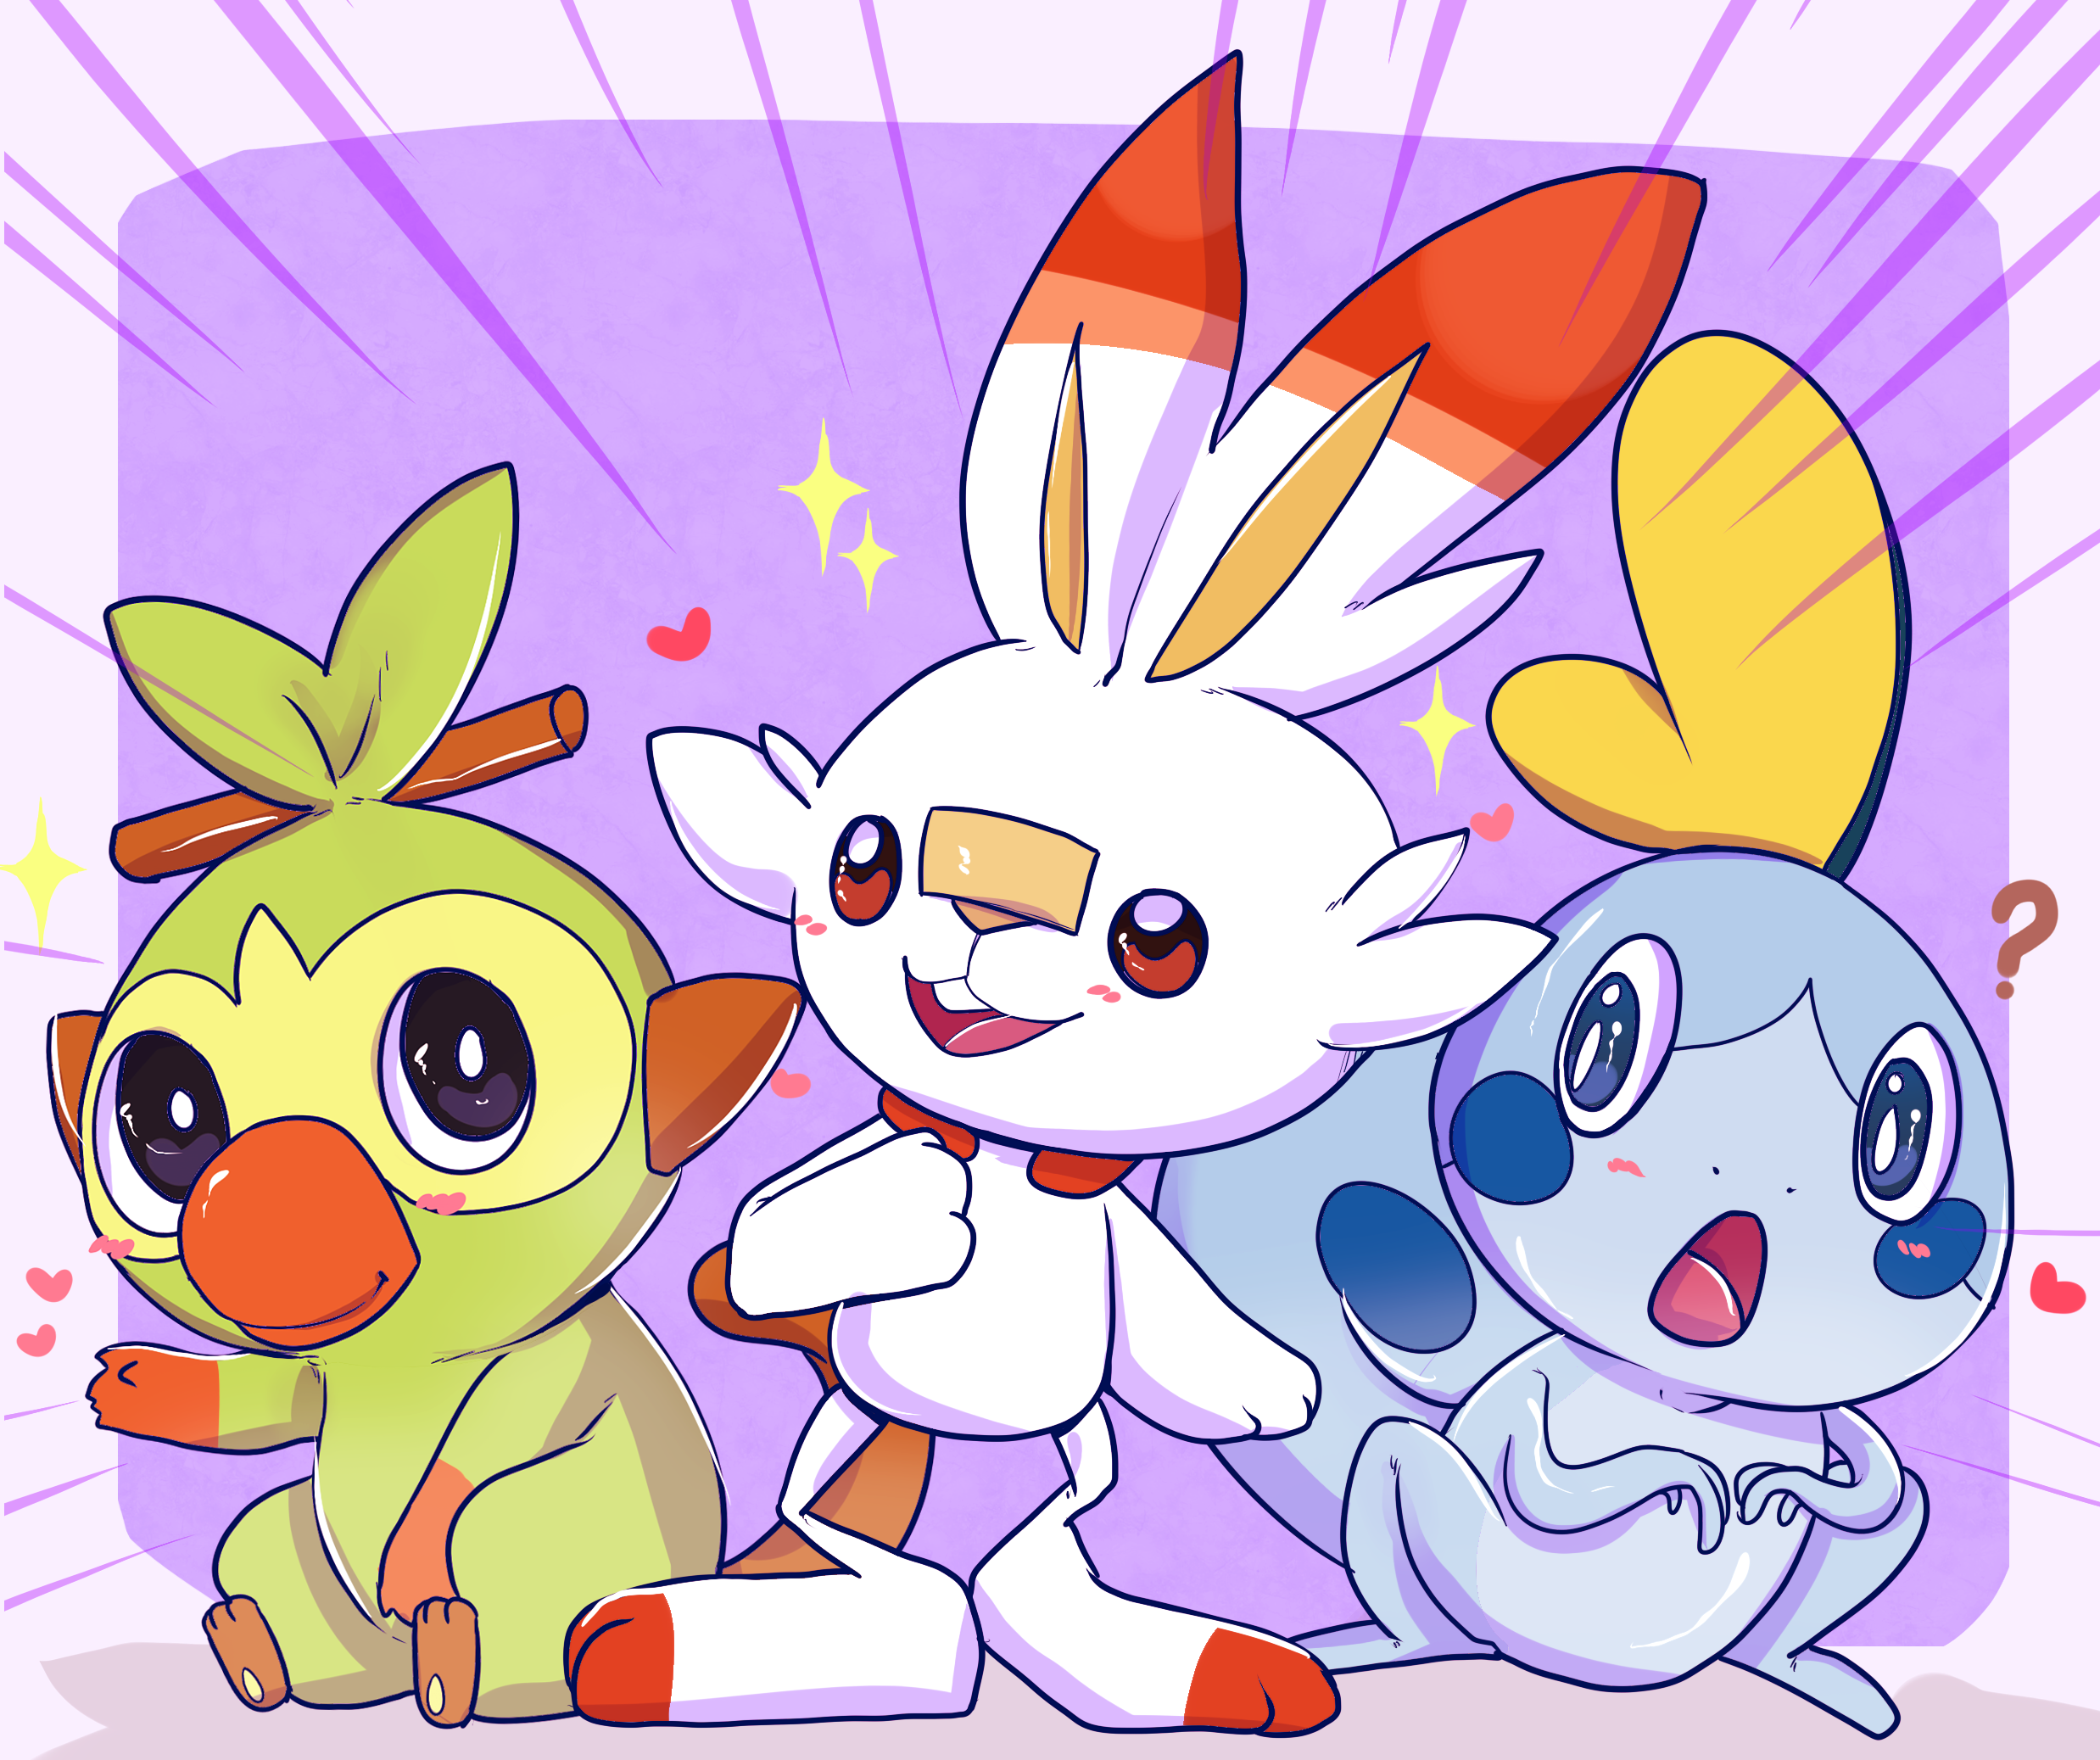 Grookey Pokemon Pokemon Sword And Shield Scorbunny Pokemon Sobble Pokemon Wallpaper Resolution 2476x2075 Id 1138831 Wallha Com Check out inspiring examples of grookey_pokemon artwork on deviantart, and get inspired by our community of talented artists. wallha com